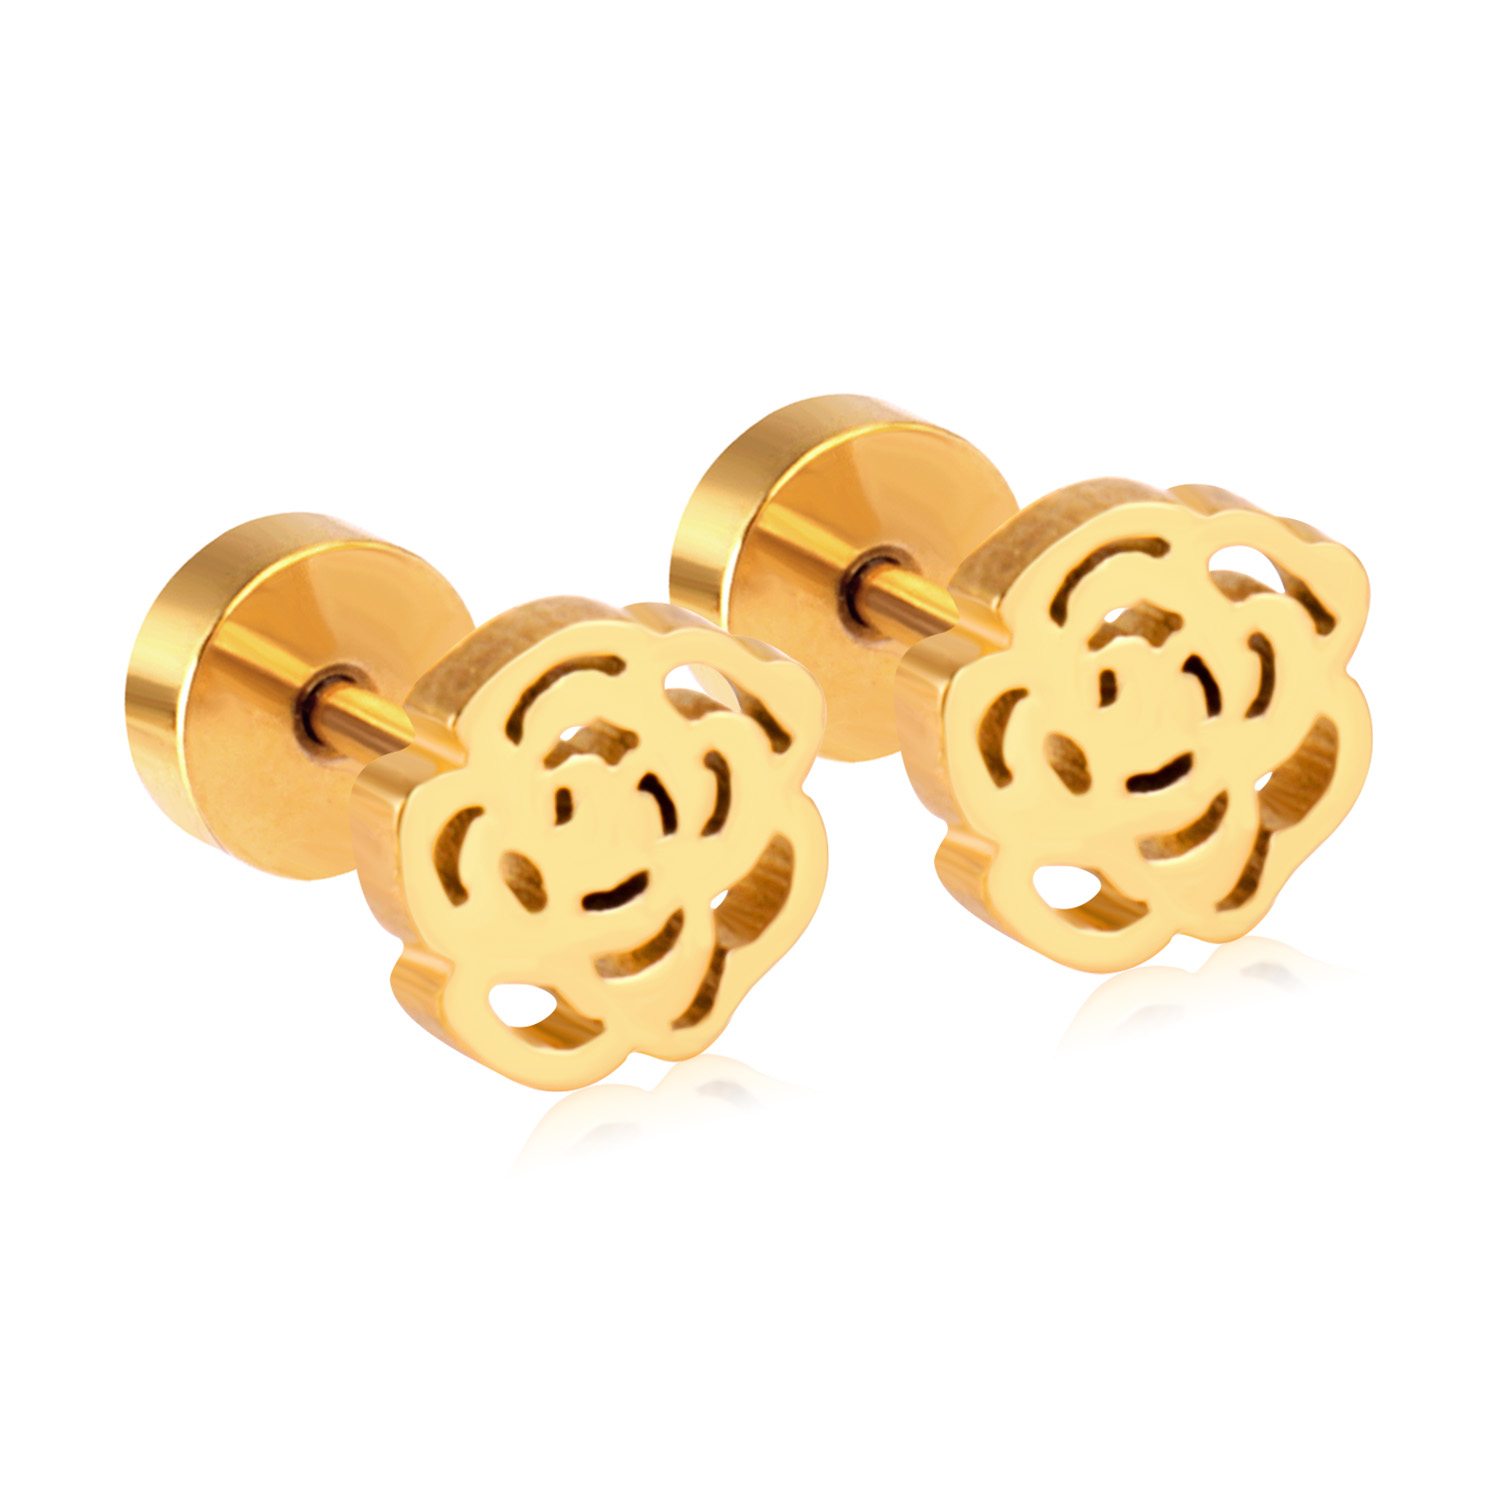 <strong>Gold</strong> Plated <strong>Earring</strong> Rose <strong>Flower</strong> Shaped Screw <strong>Earring</strong> Jewelry Girls <strong>Earring</strong> Guangzhou Supplier